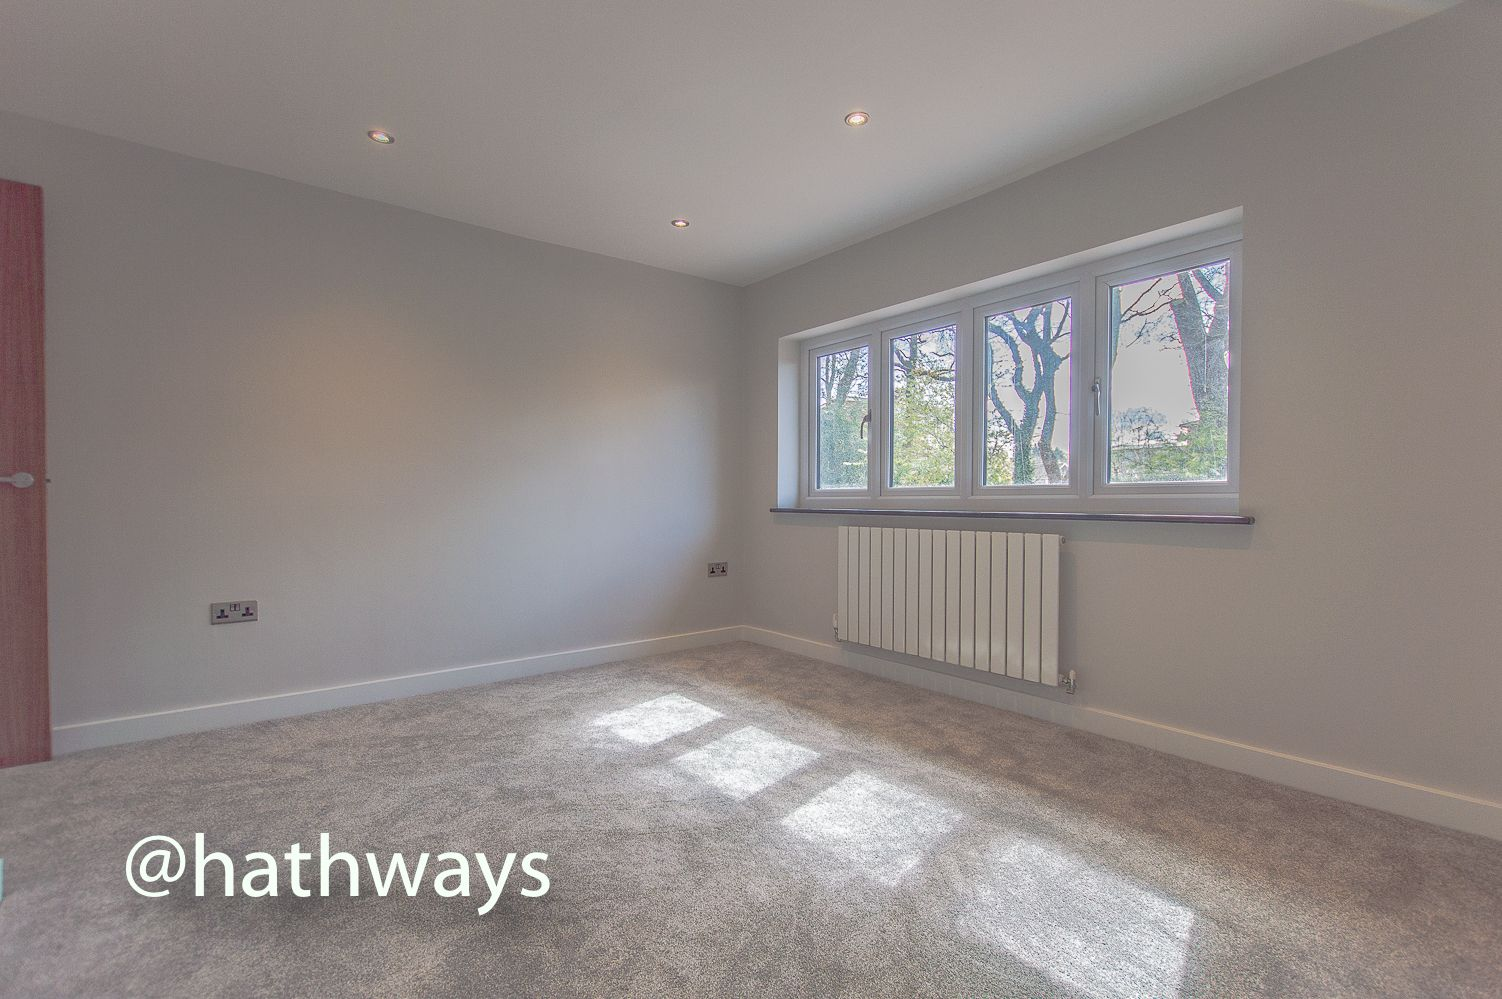 3 bed house for sale in Garw Wood Drive  - Property Image 41